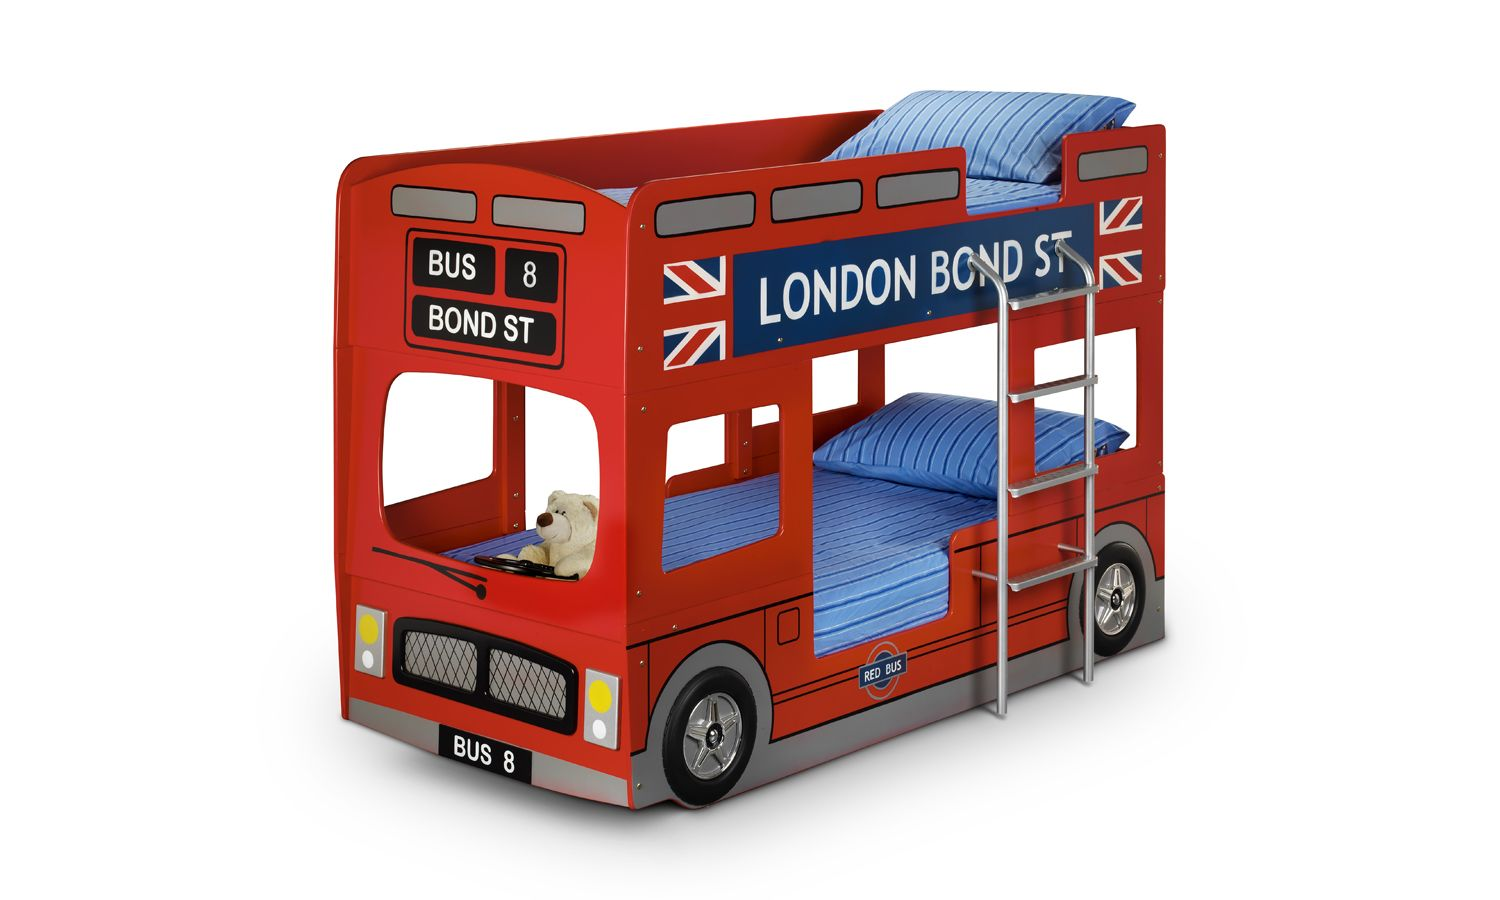 Car bunk beds for kids - London Bus Bunk Bed